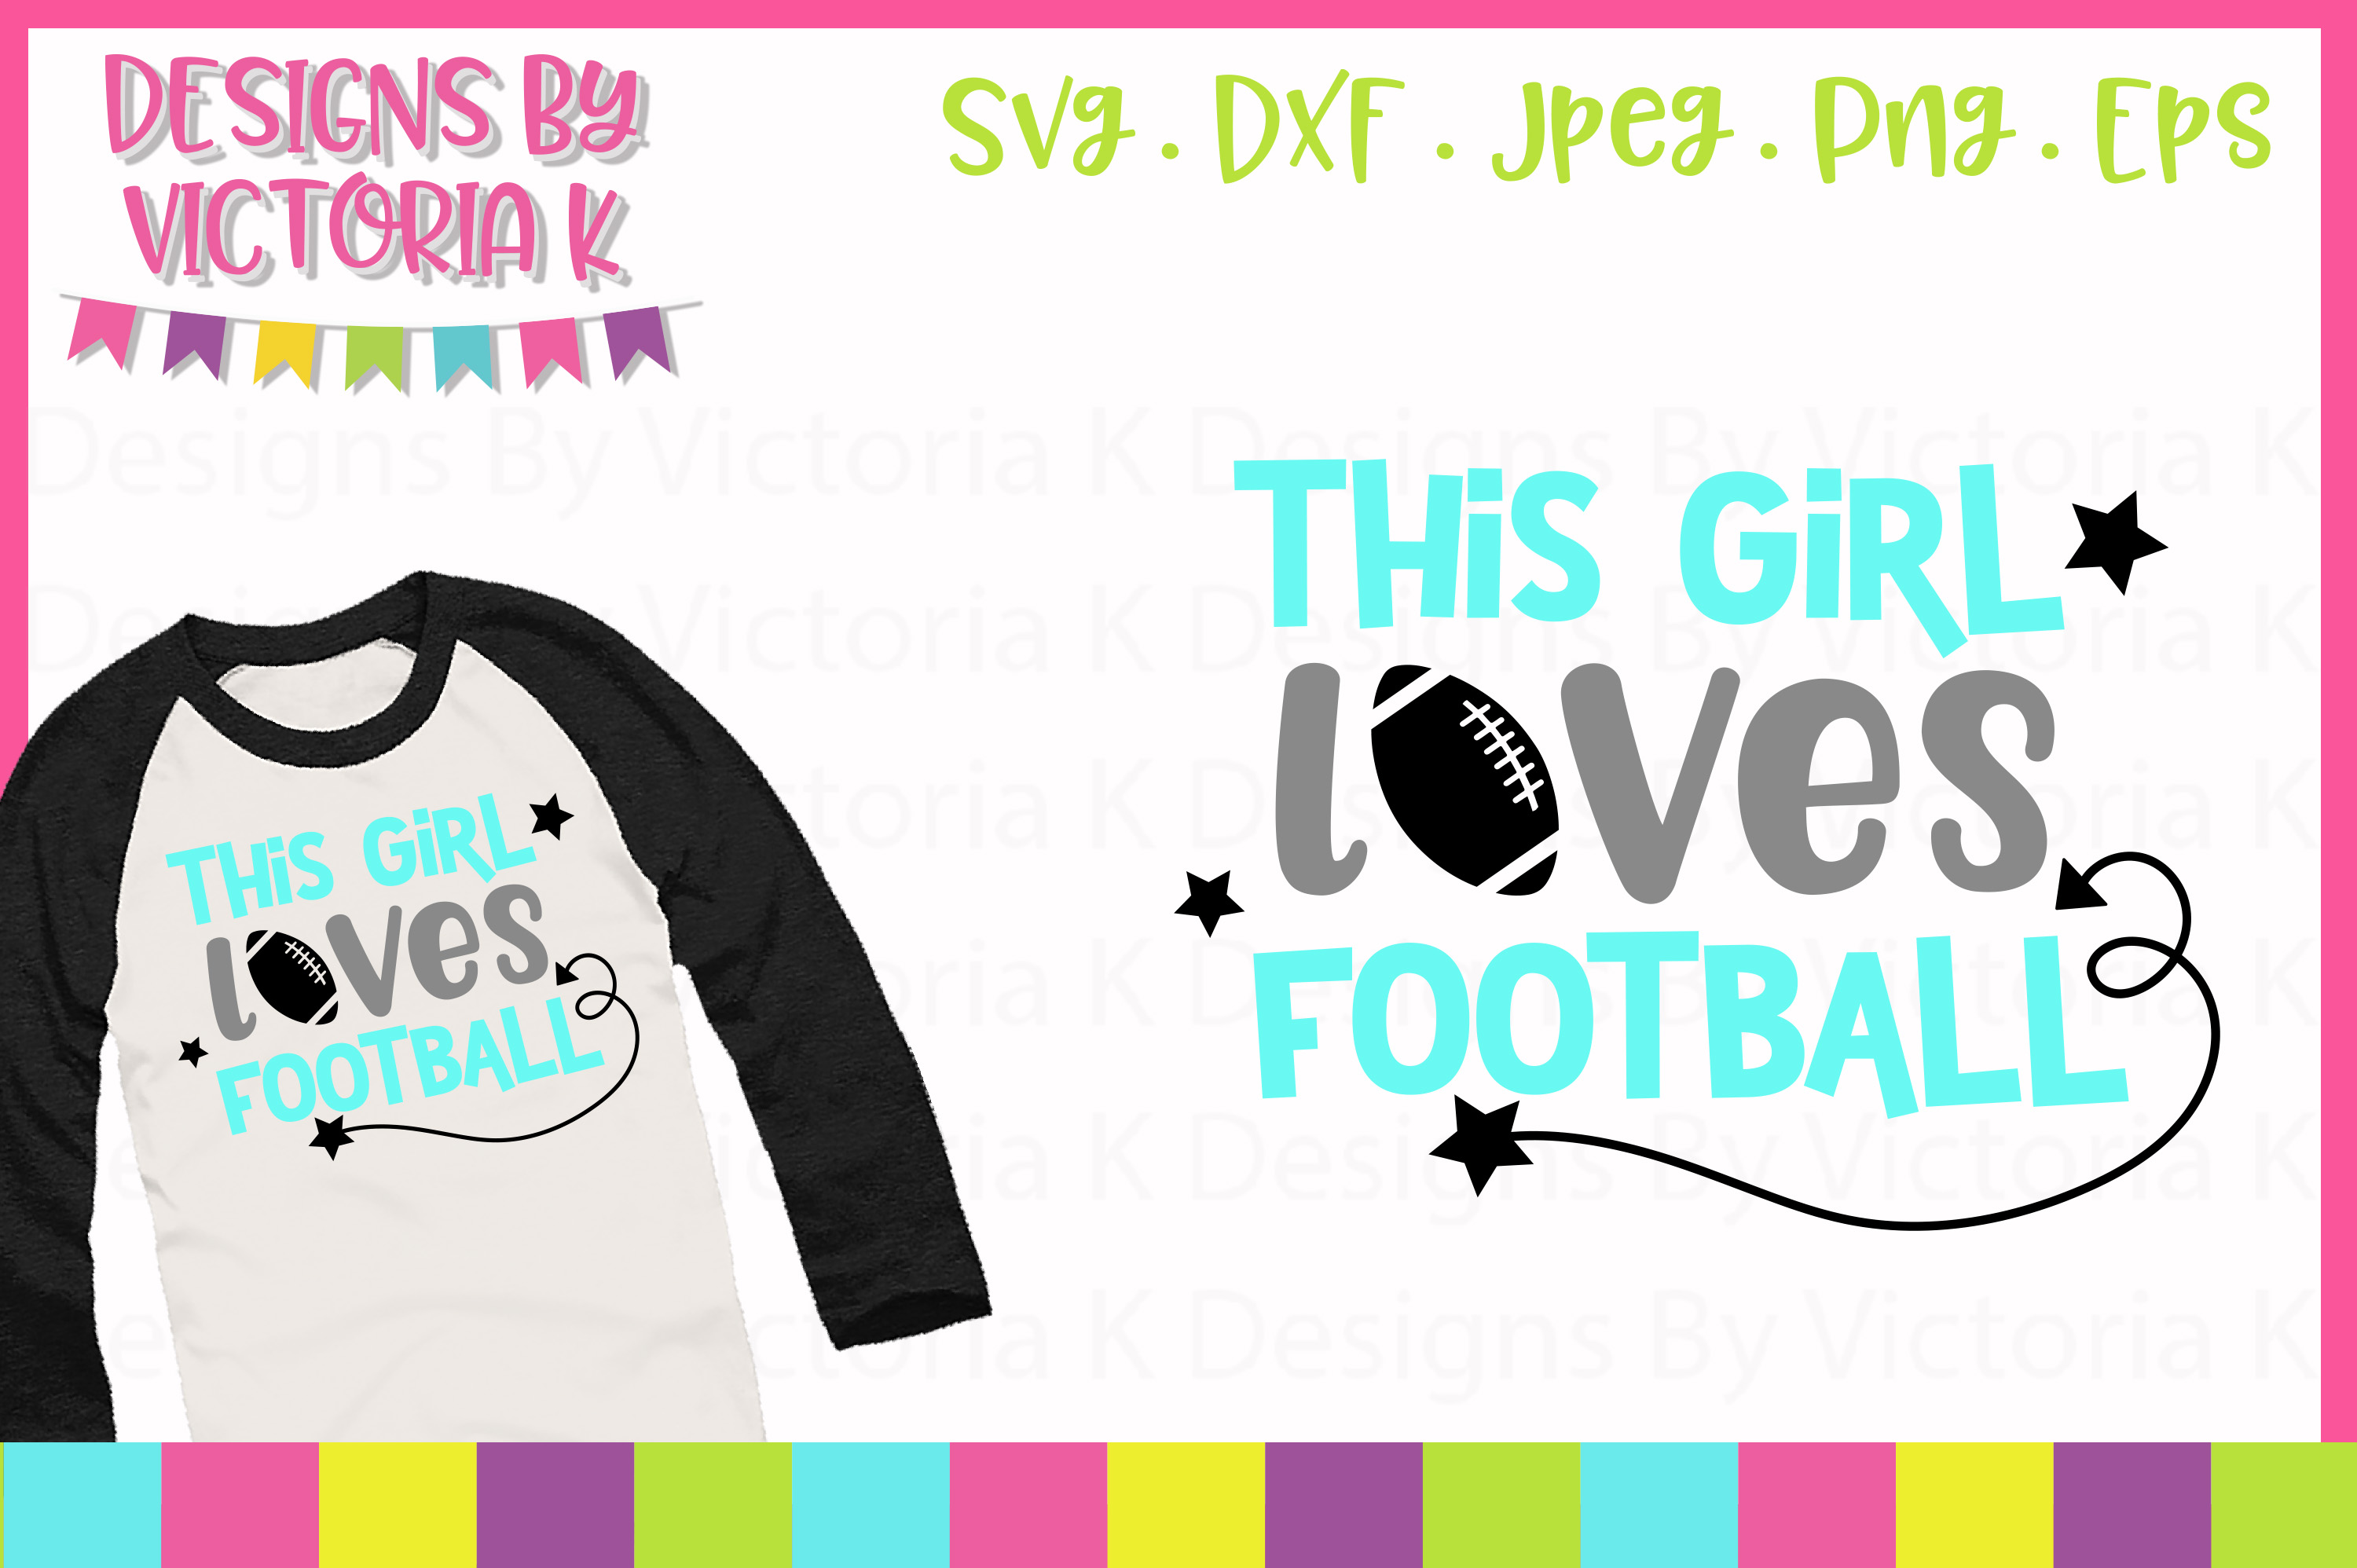 This Girl Loves Football, SVG, DXF, PNG example image 1